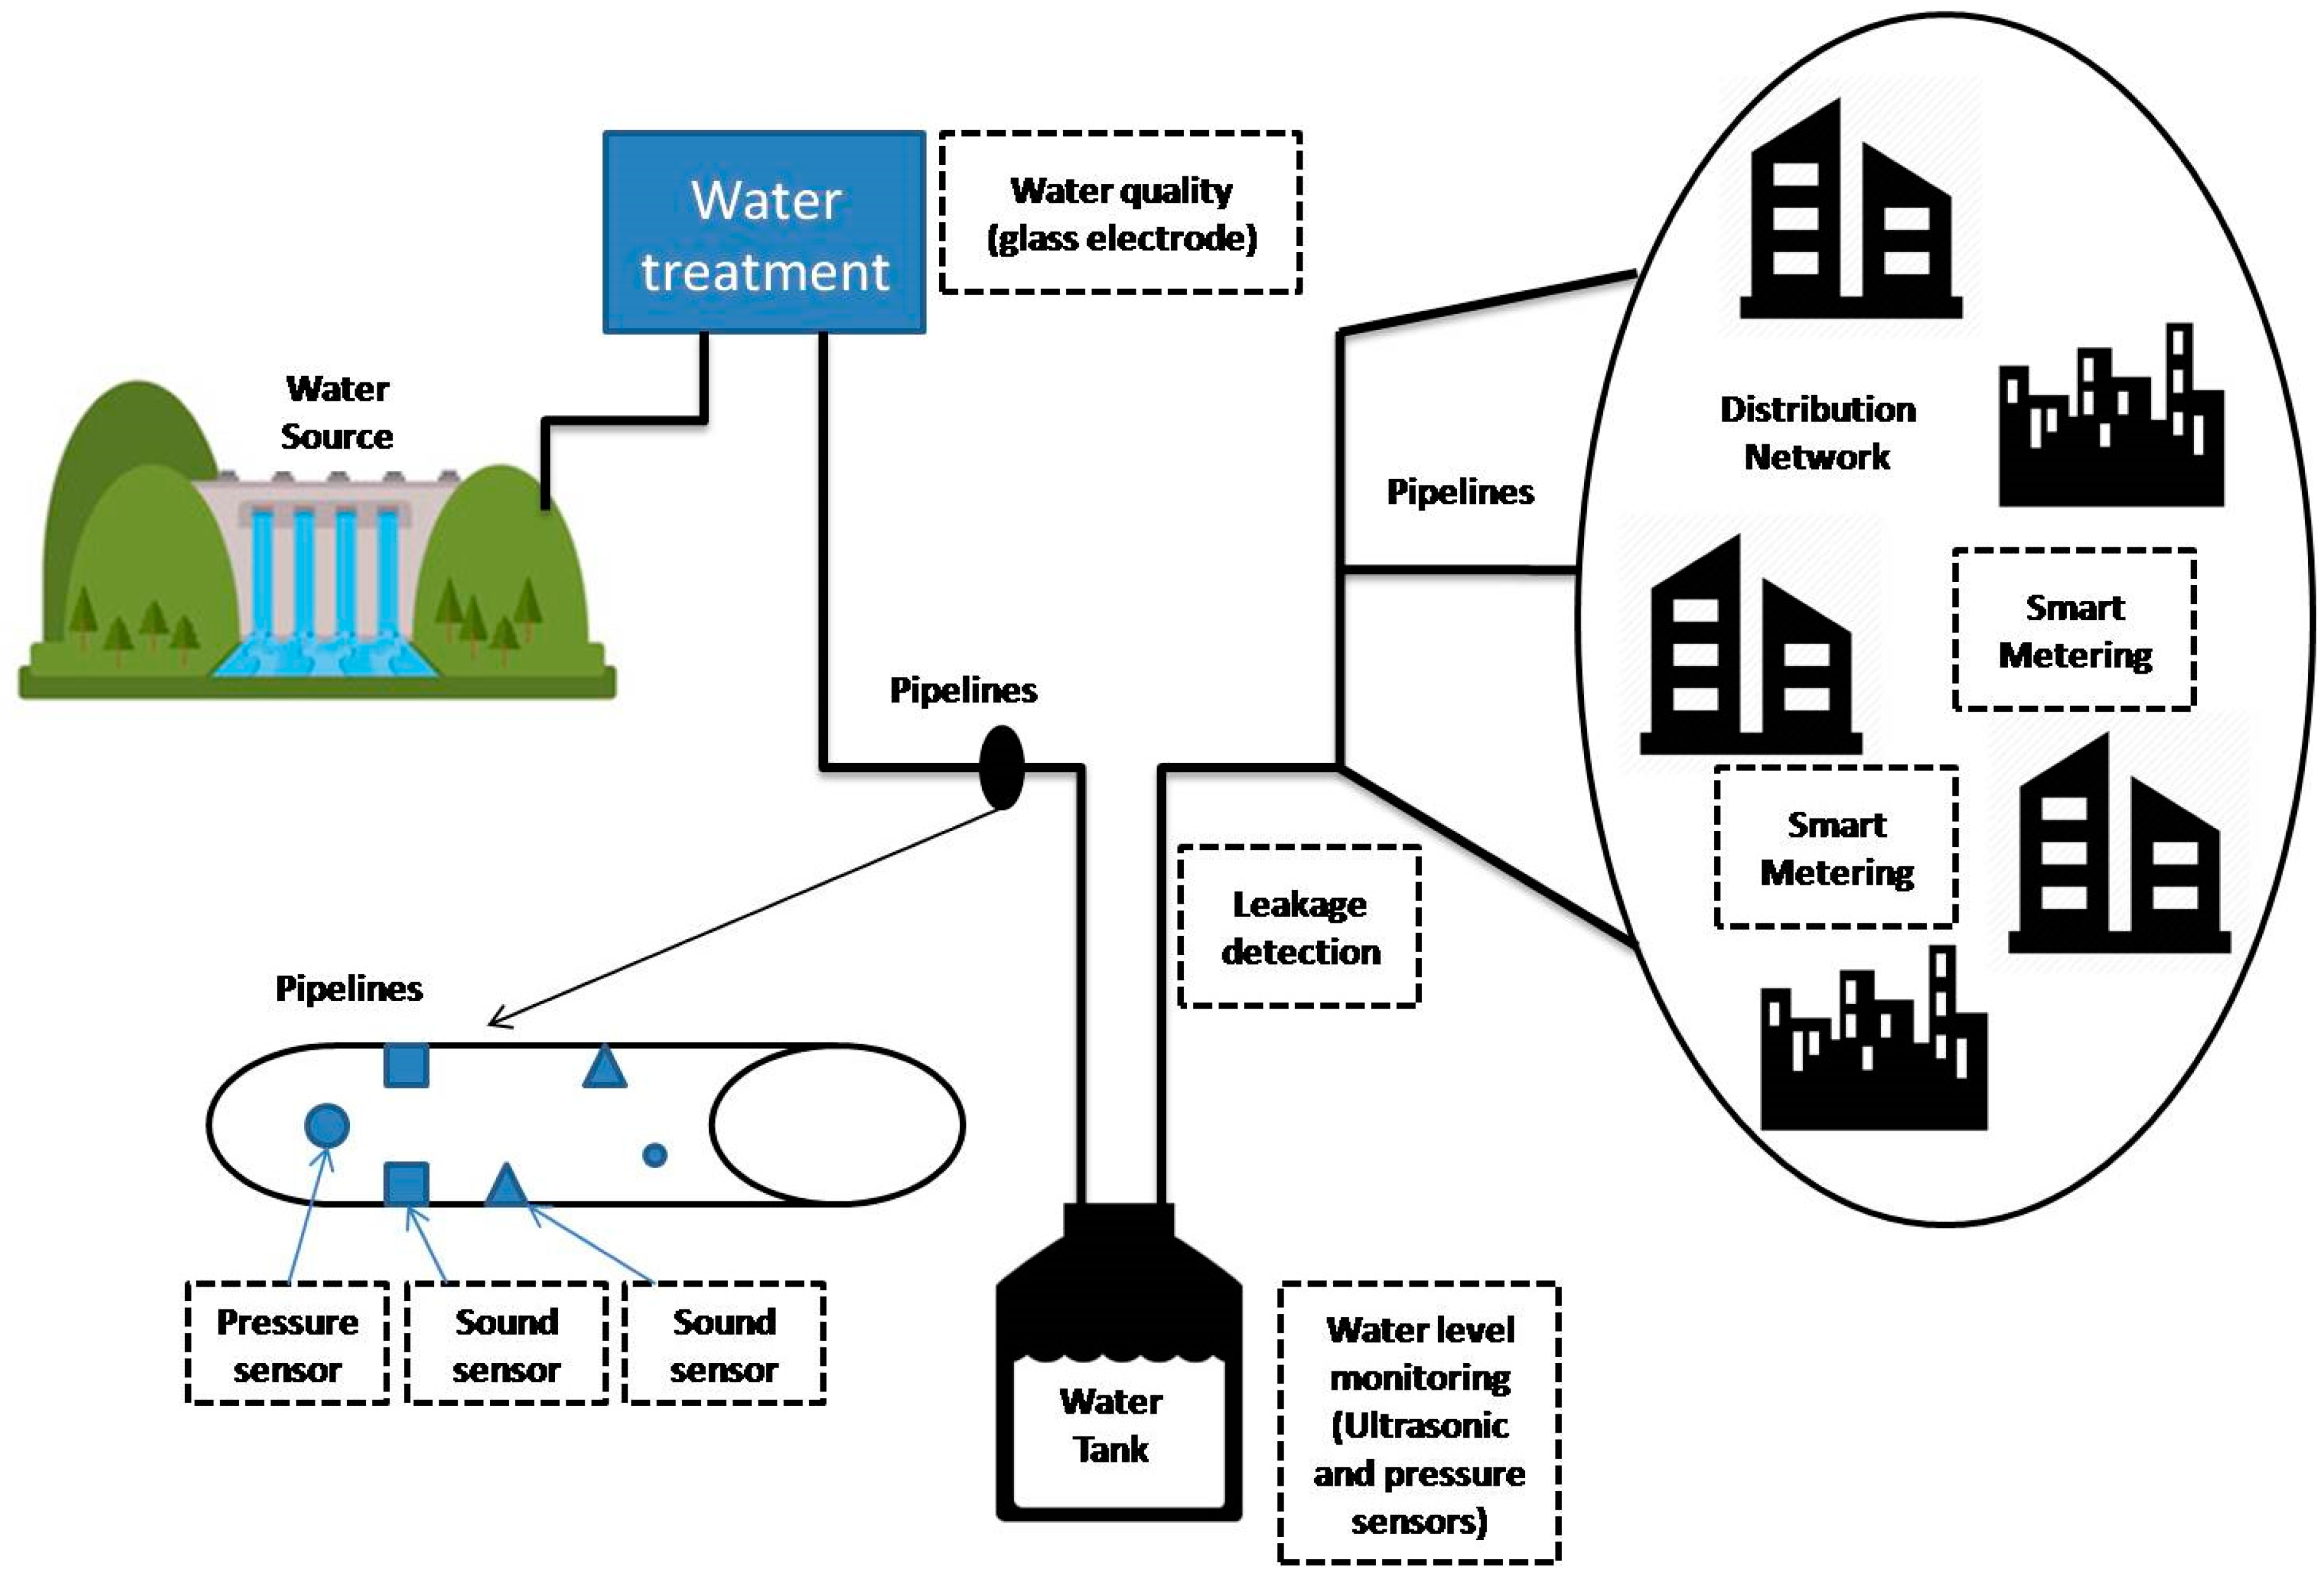 Energies Free Full Text A Review Of Smart Cities Based On The Rain Sound Effects Generator Circuit Voice Recorder 10 00421 G006